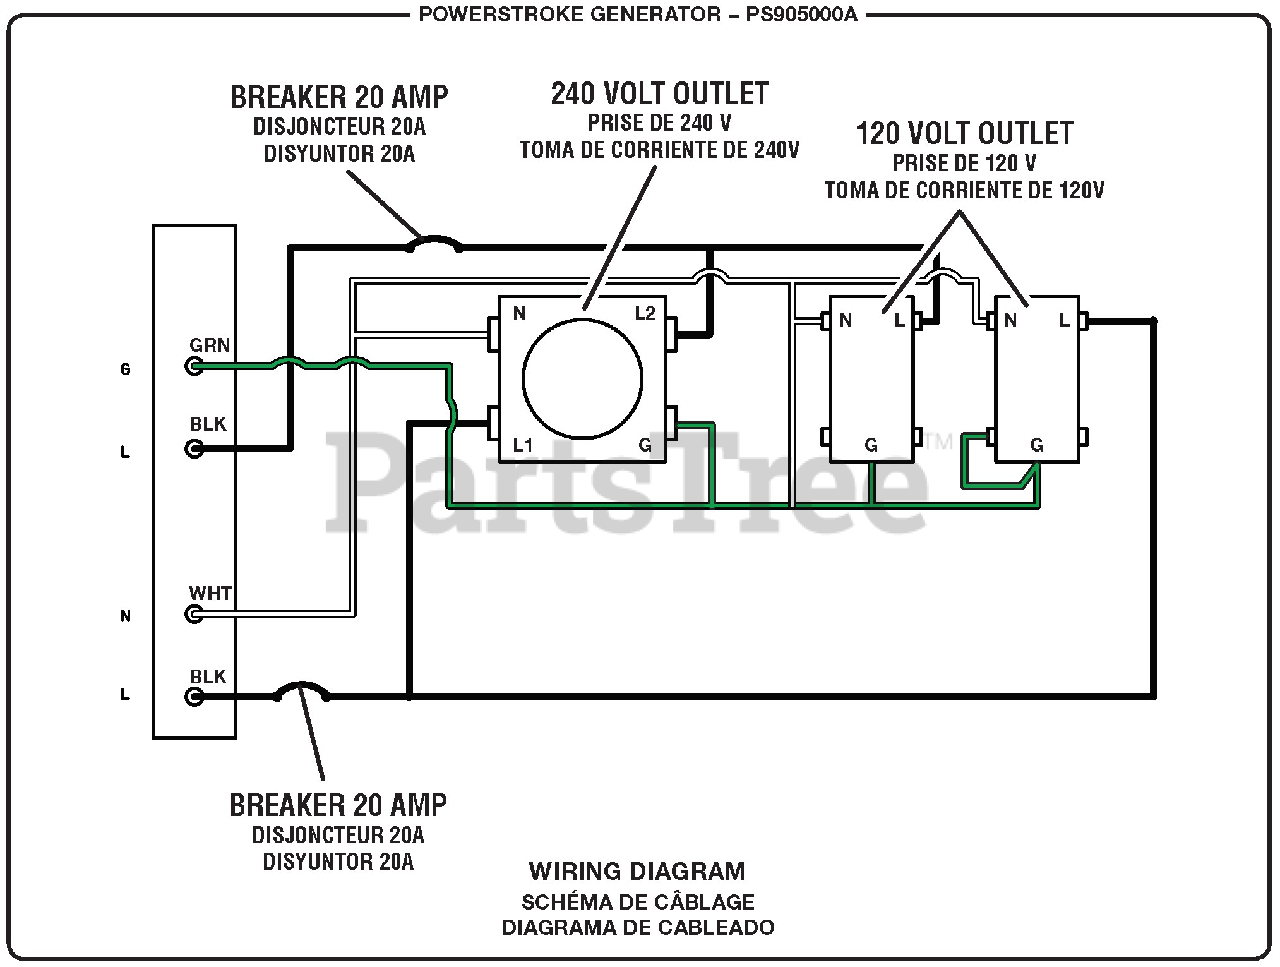 Powerstroke Wiring Diagram